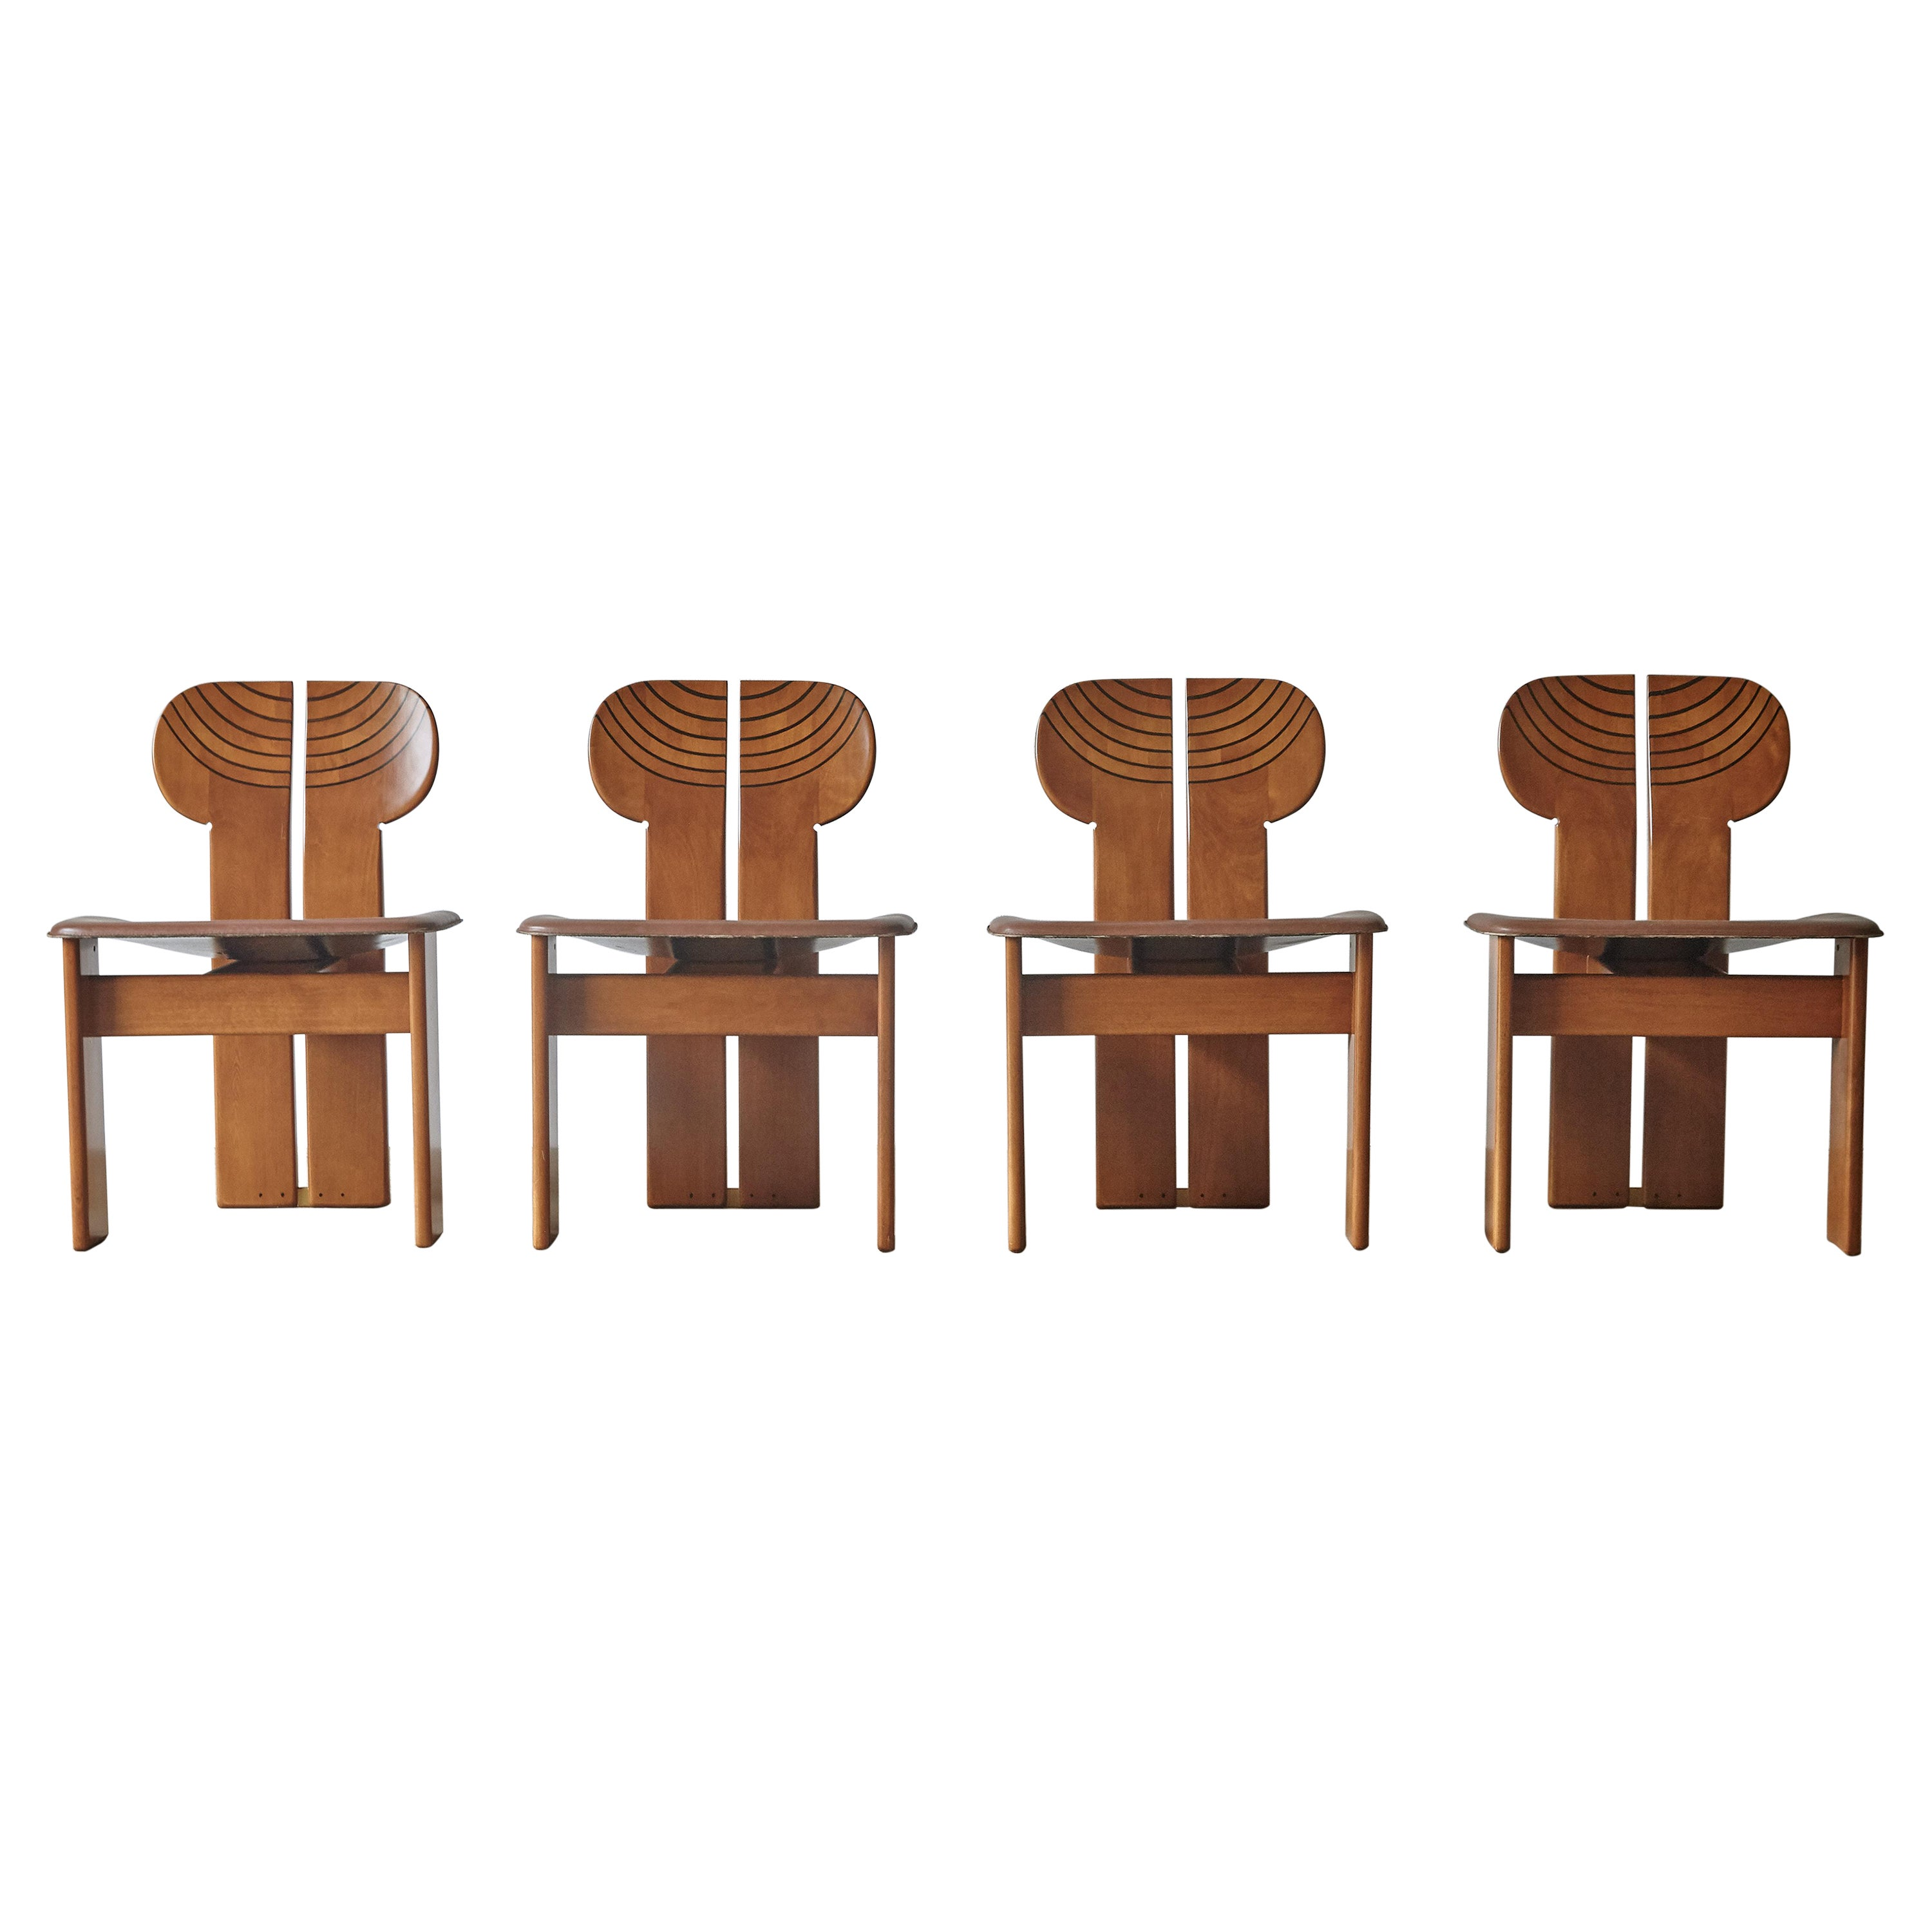 Set of Four Africa Chairs by Afra & Tobia Scarpa, Maxalto, Italy, 1970s-1980s